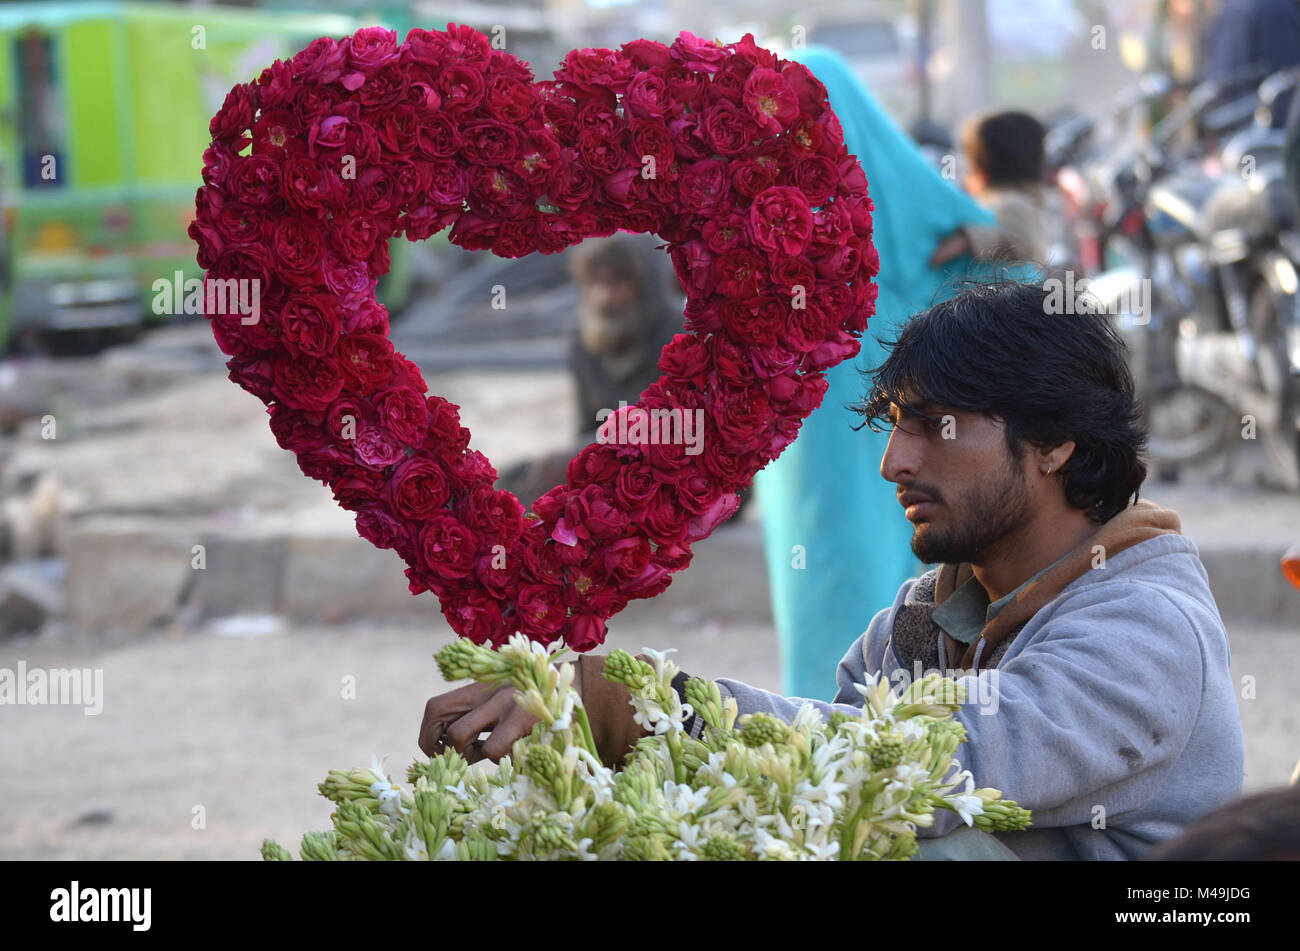 Pakistani People Purchasing Fresh Roses Flowers Bouquets And